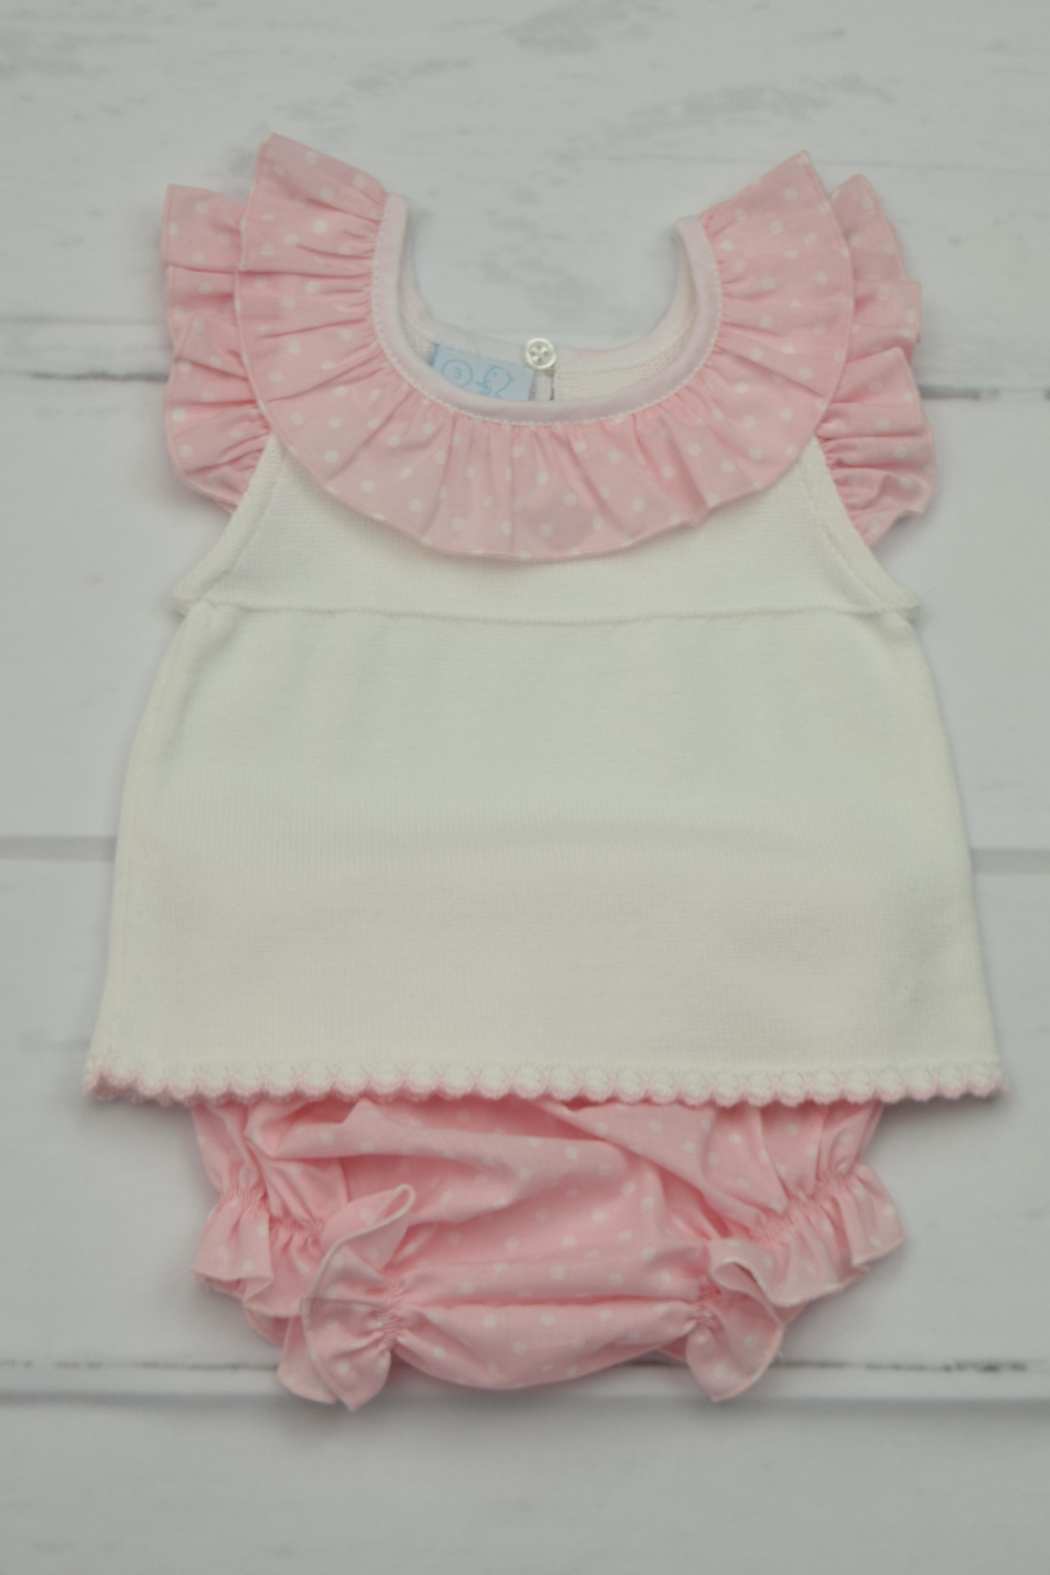 Granlei 1980 Pink & White Outfit - Back Cropped Image